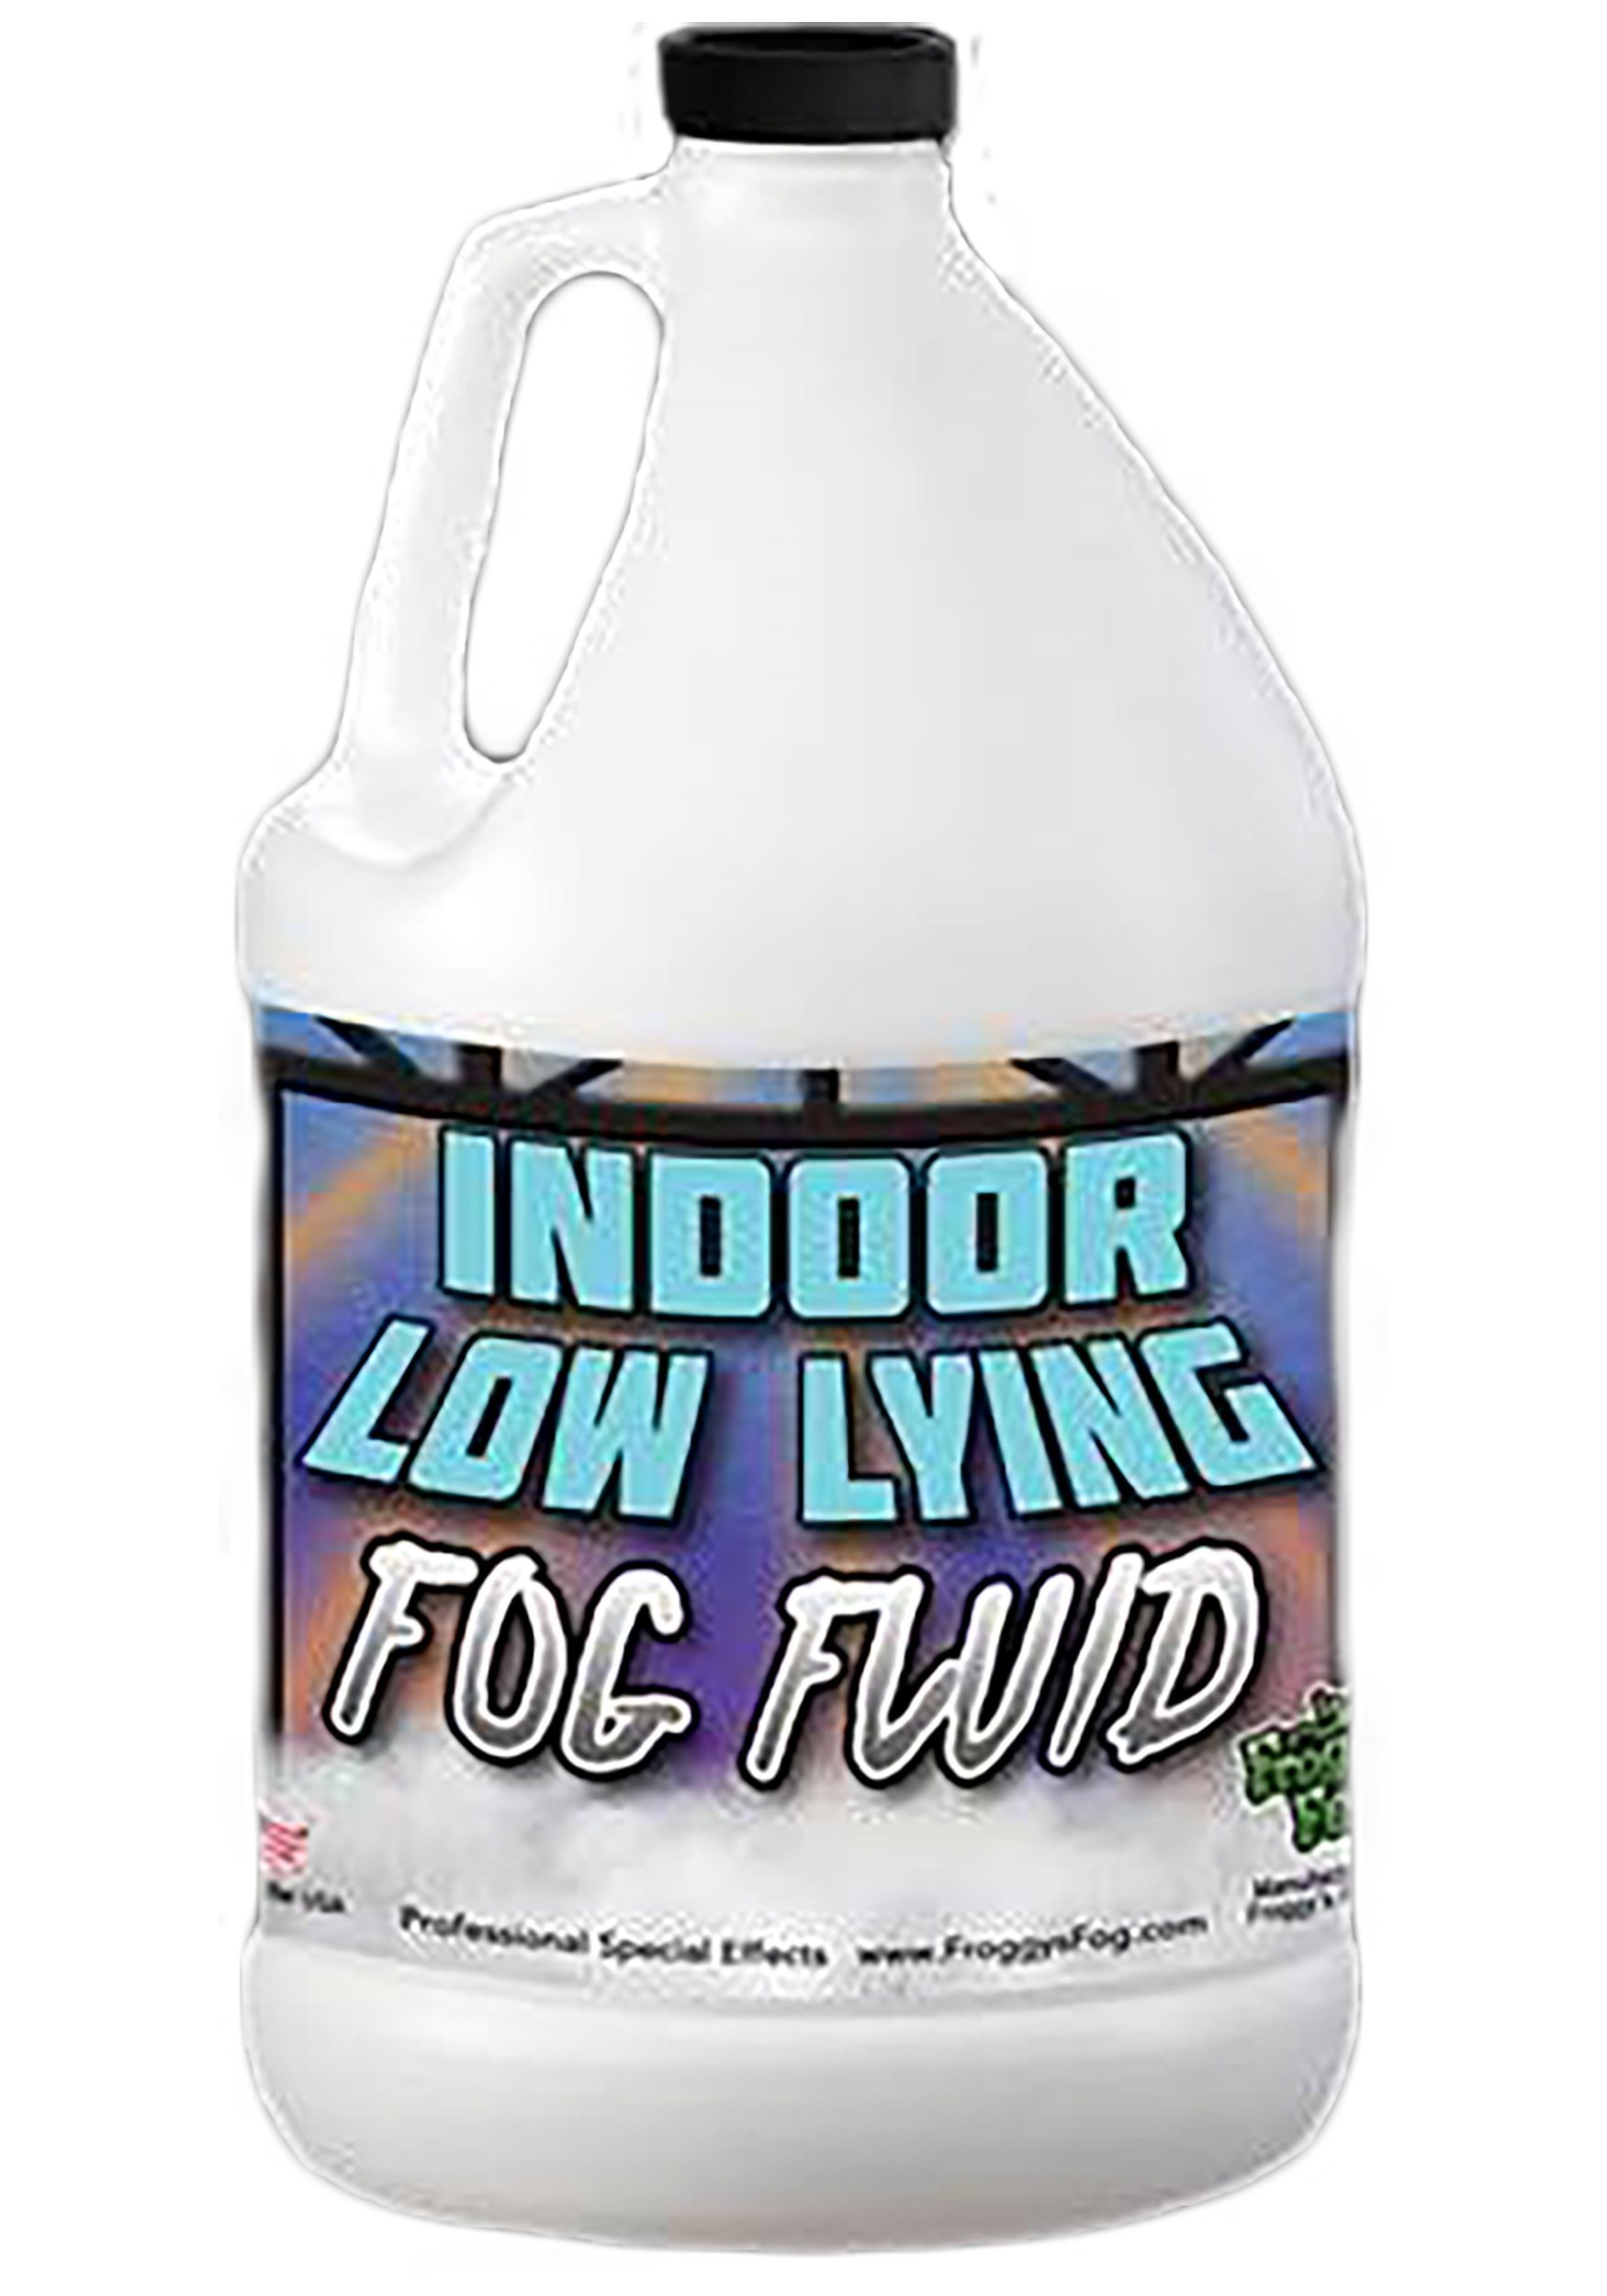 Indoor Low Lying Froggy's Fog Fluid